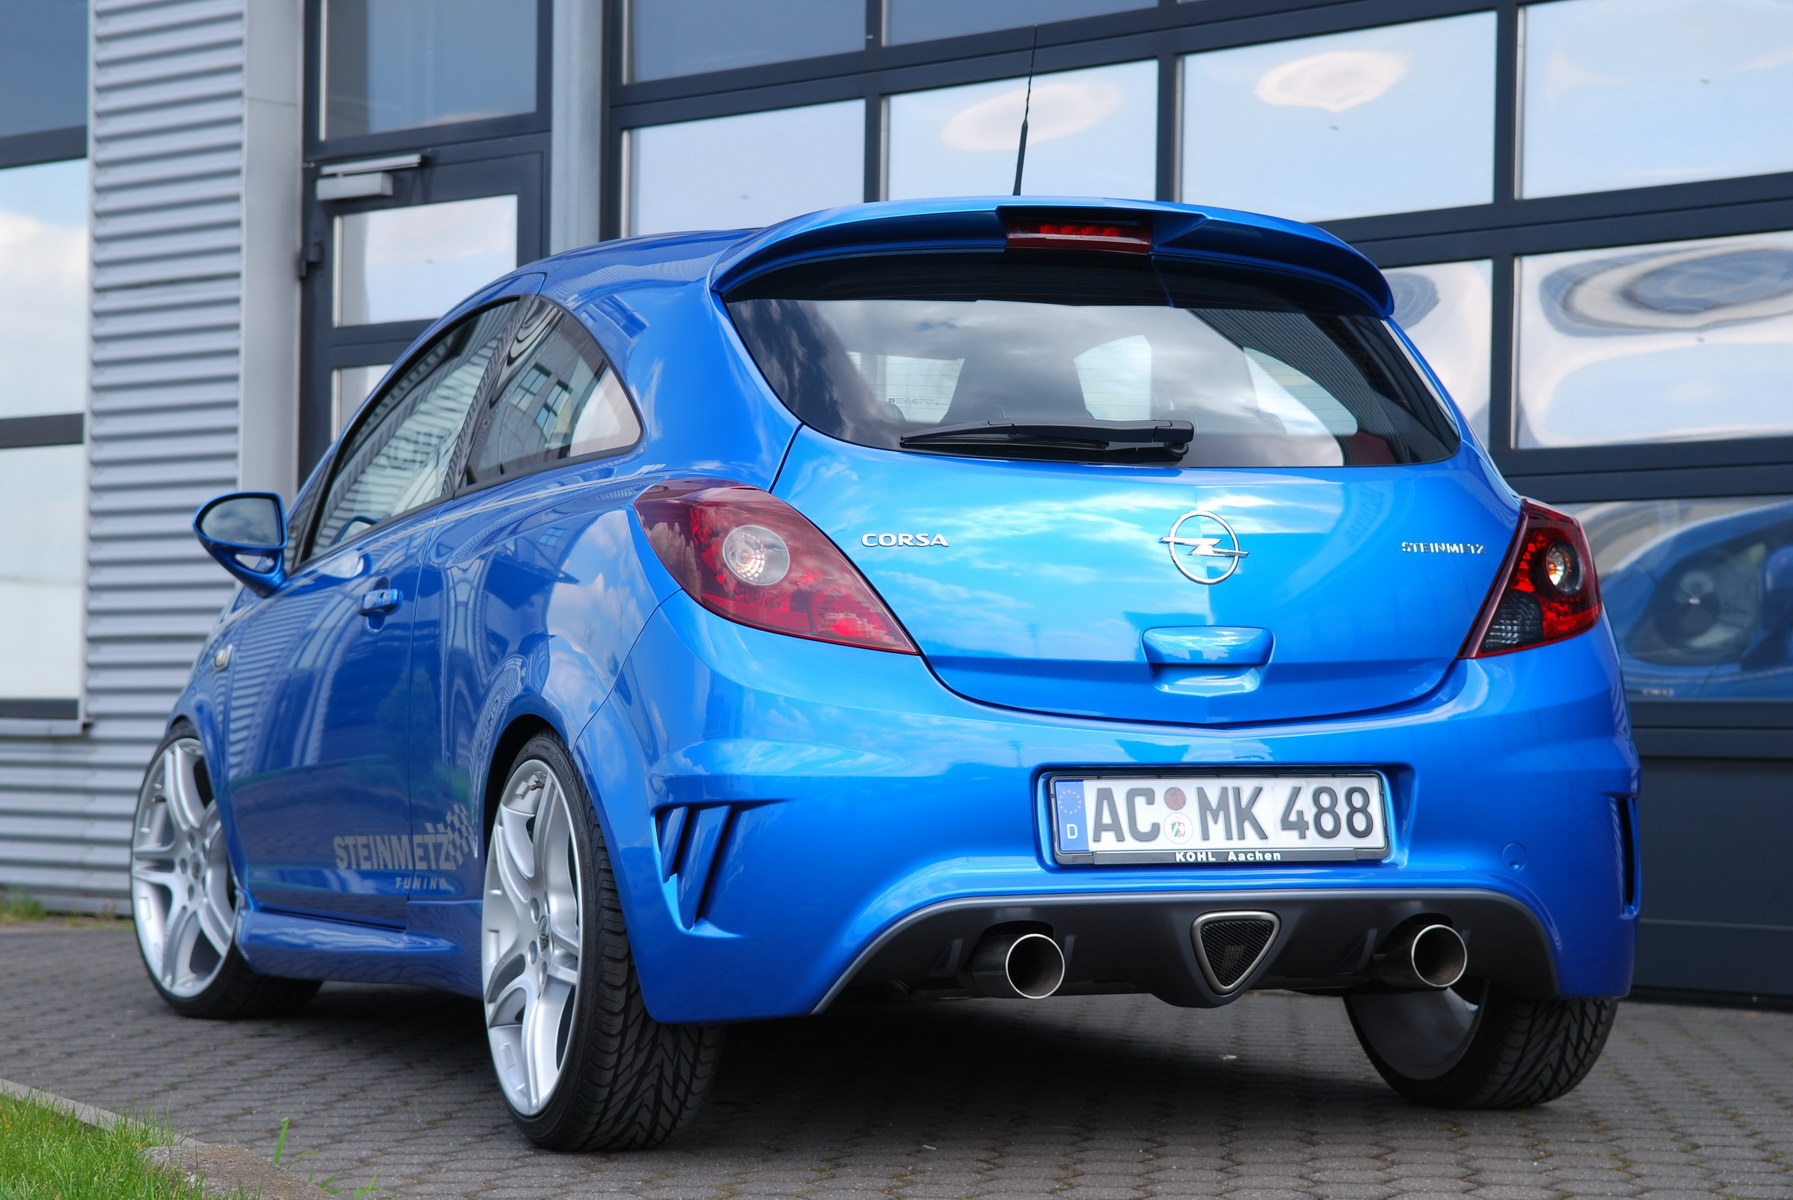 Opel Corsa OPC. View Download Wallpaper. 1793x1200. Comments